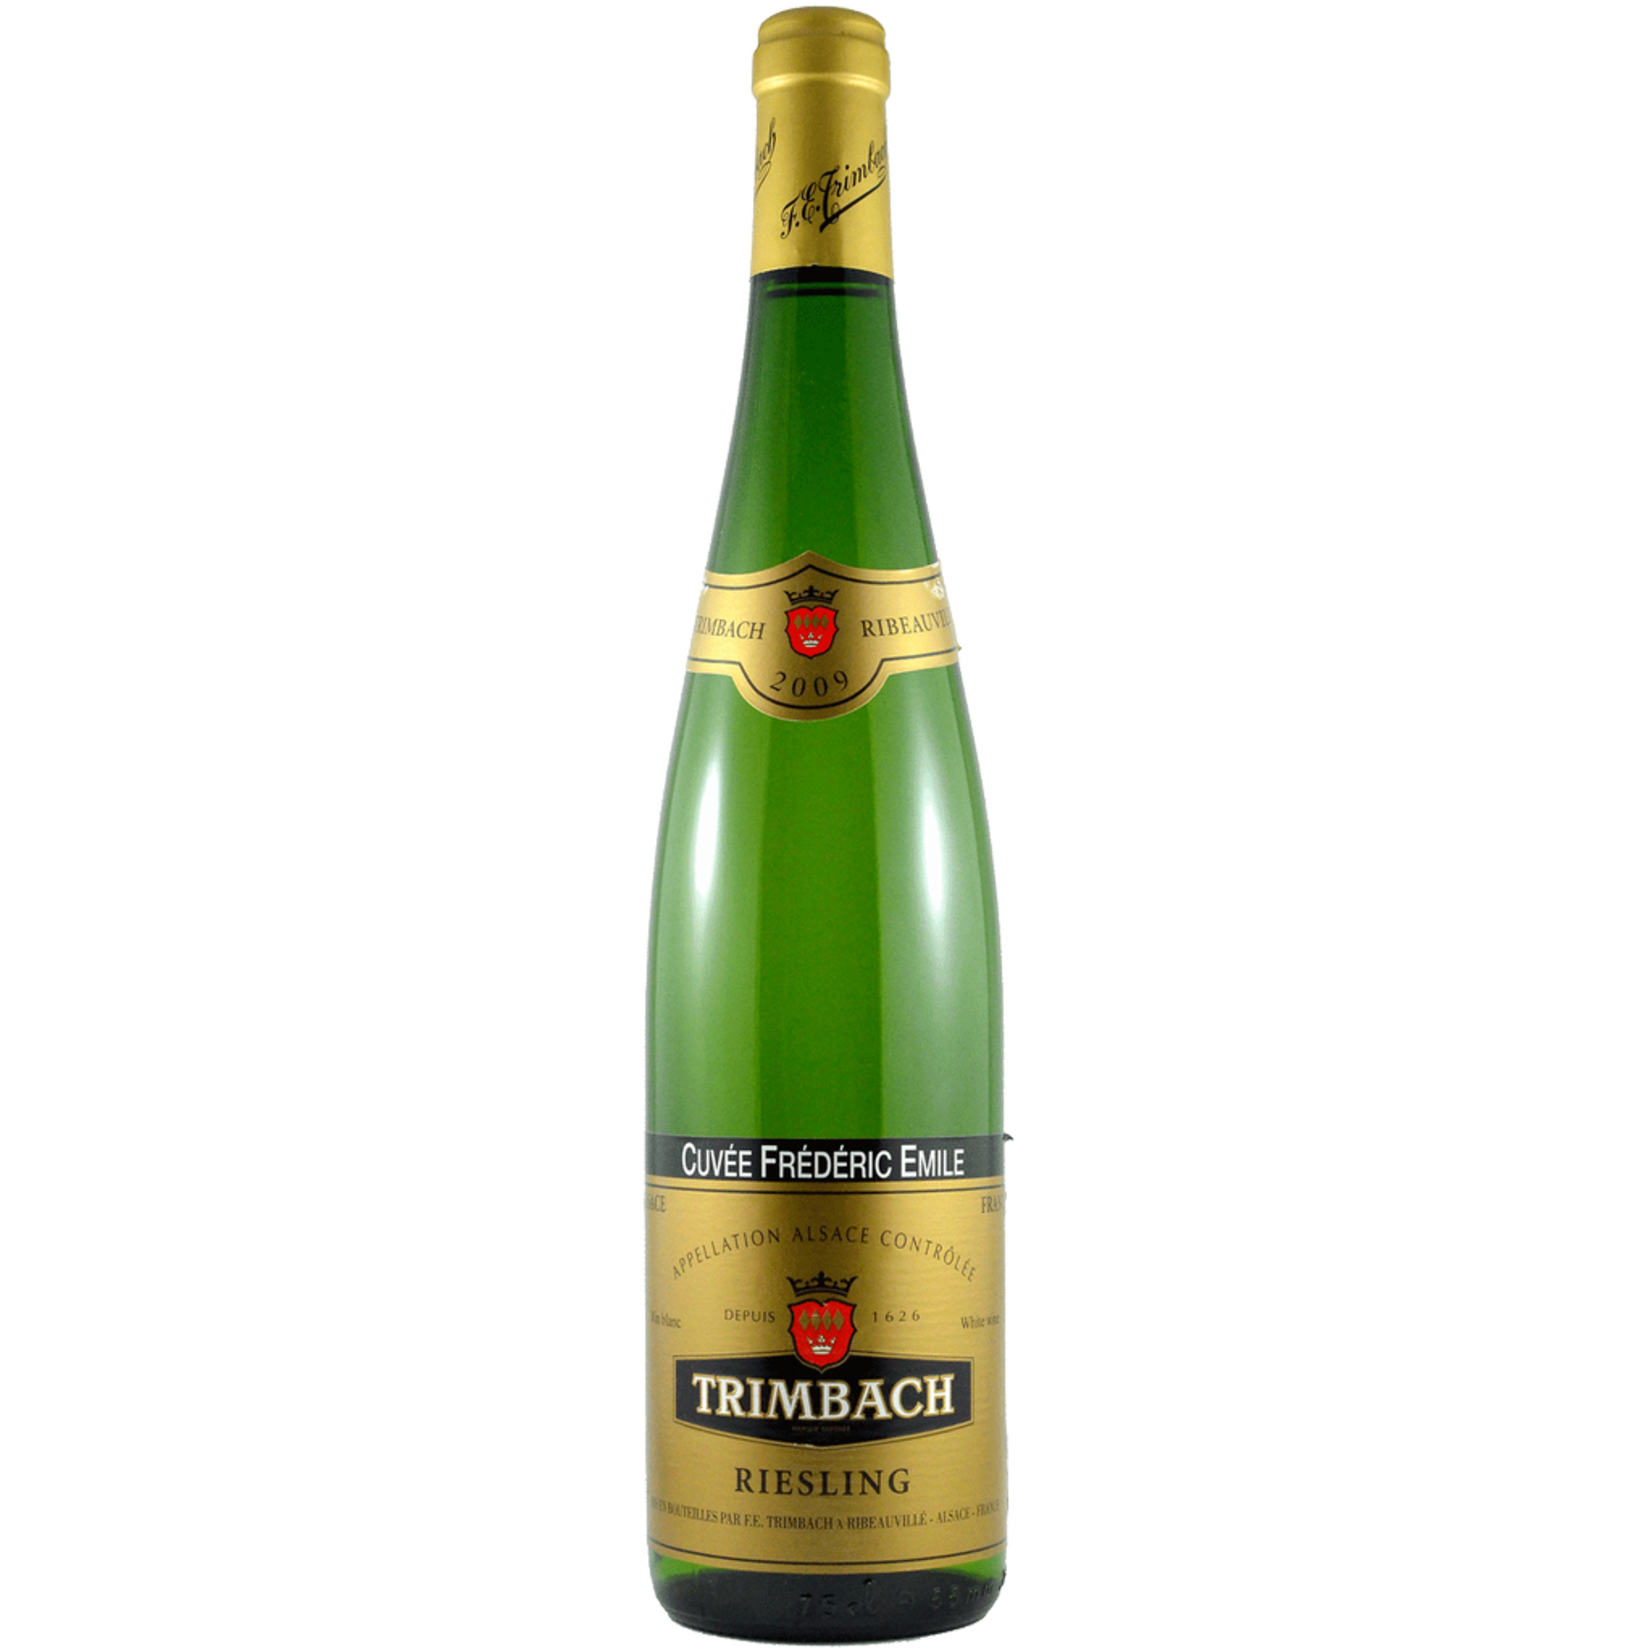 Wine Trimbach Riesling Cuvee Frederic Emile 2011